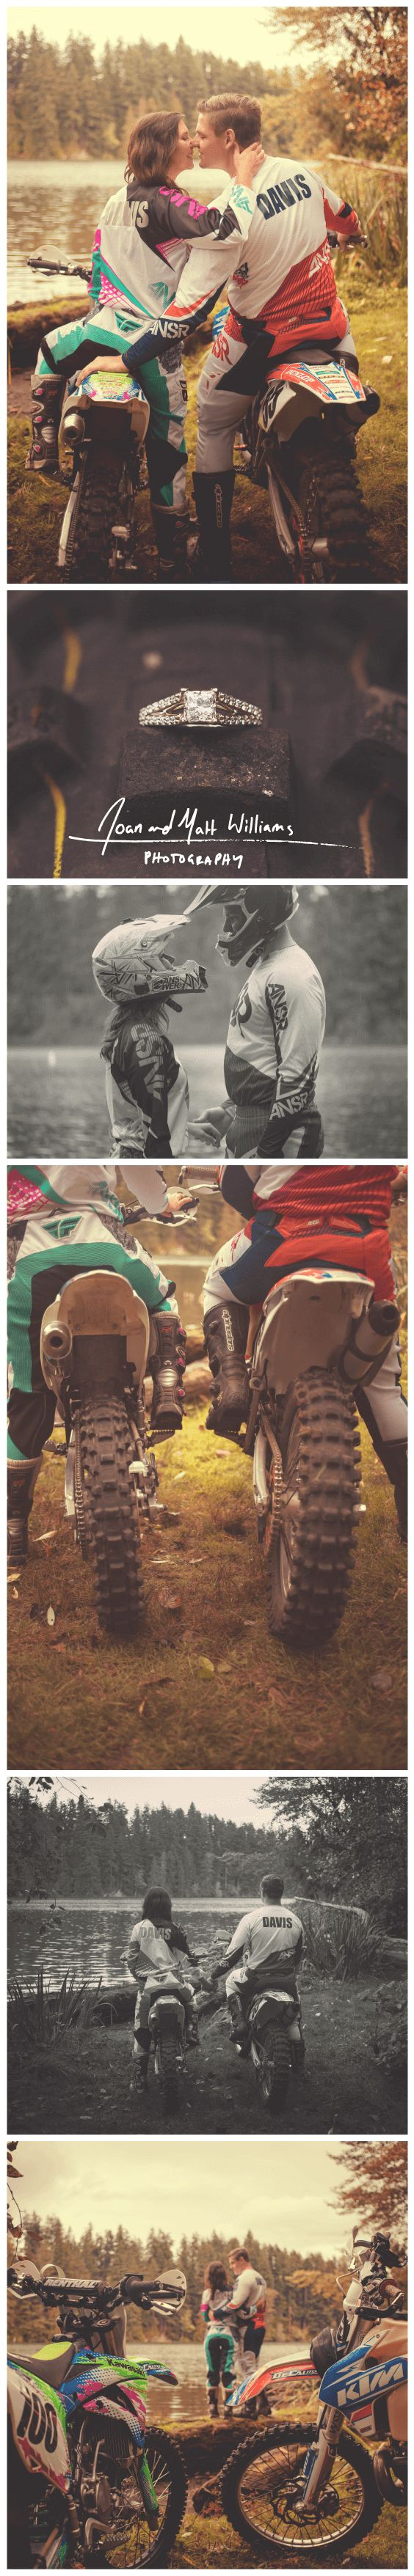 Motocross Autumn Engagement Photos with Dirt Bikes